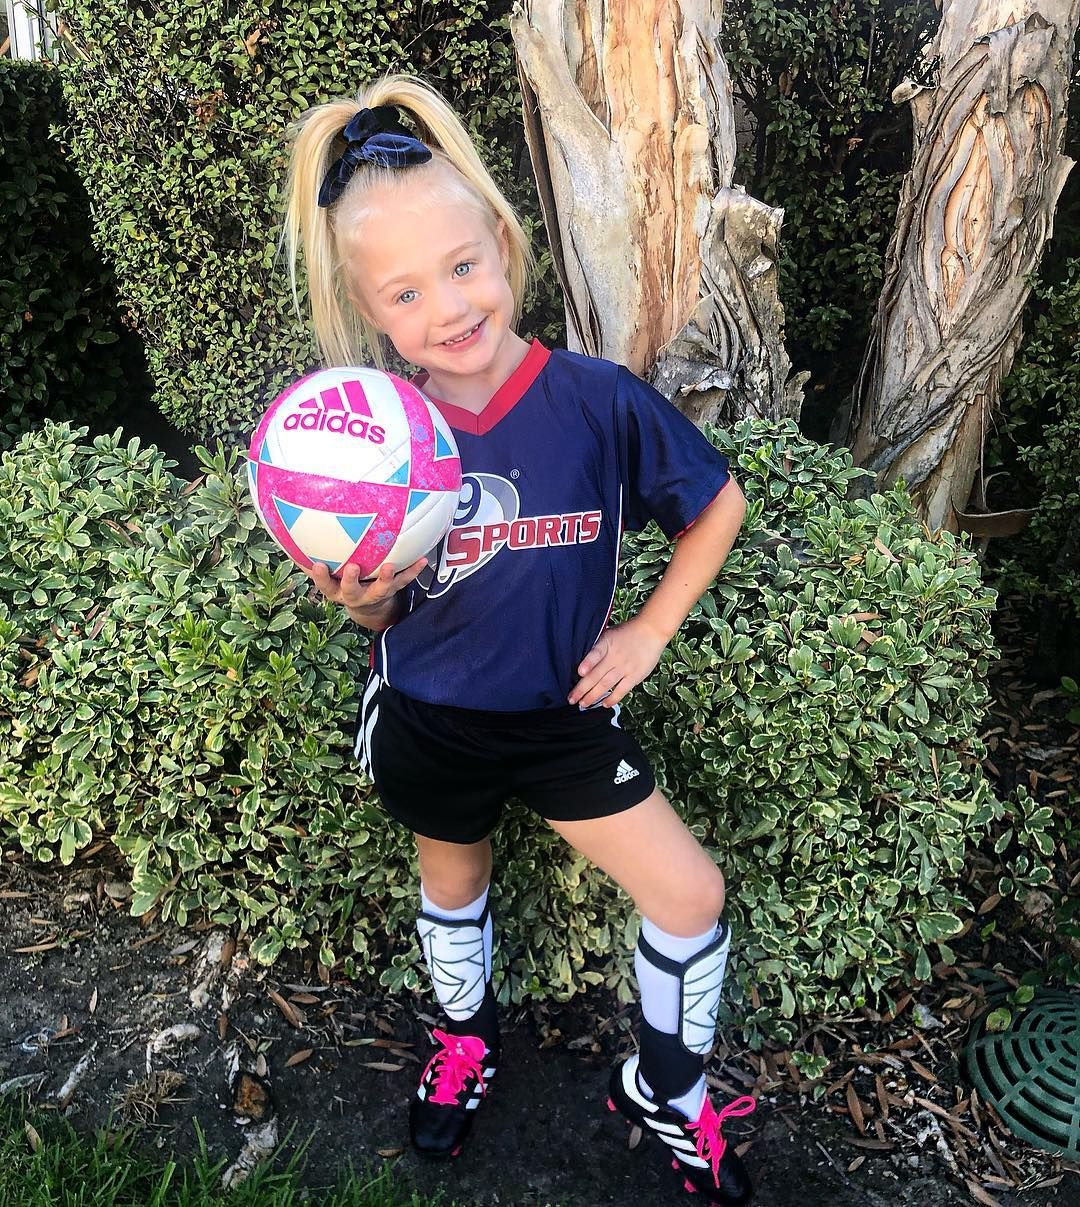 Image May Contain 1 Person Standing Shoes Shorts Child Outdoor And Nature Everleigh Rose Soccer Girls Outfits Soccer Outfits